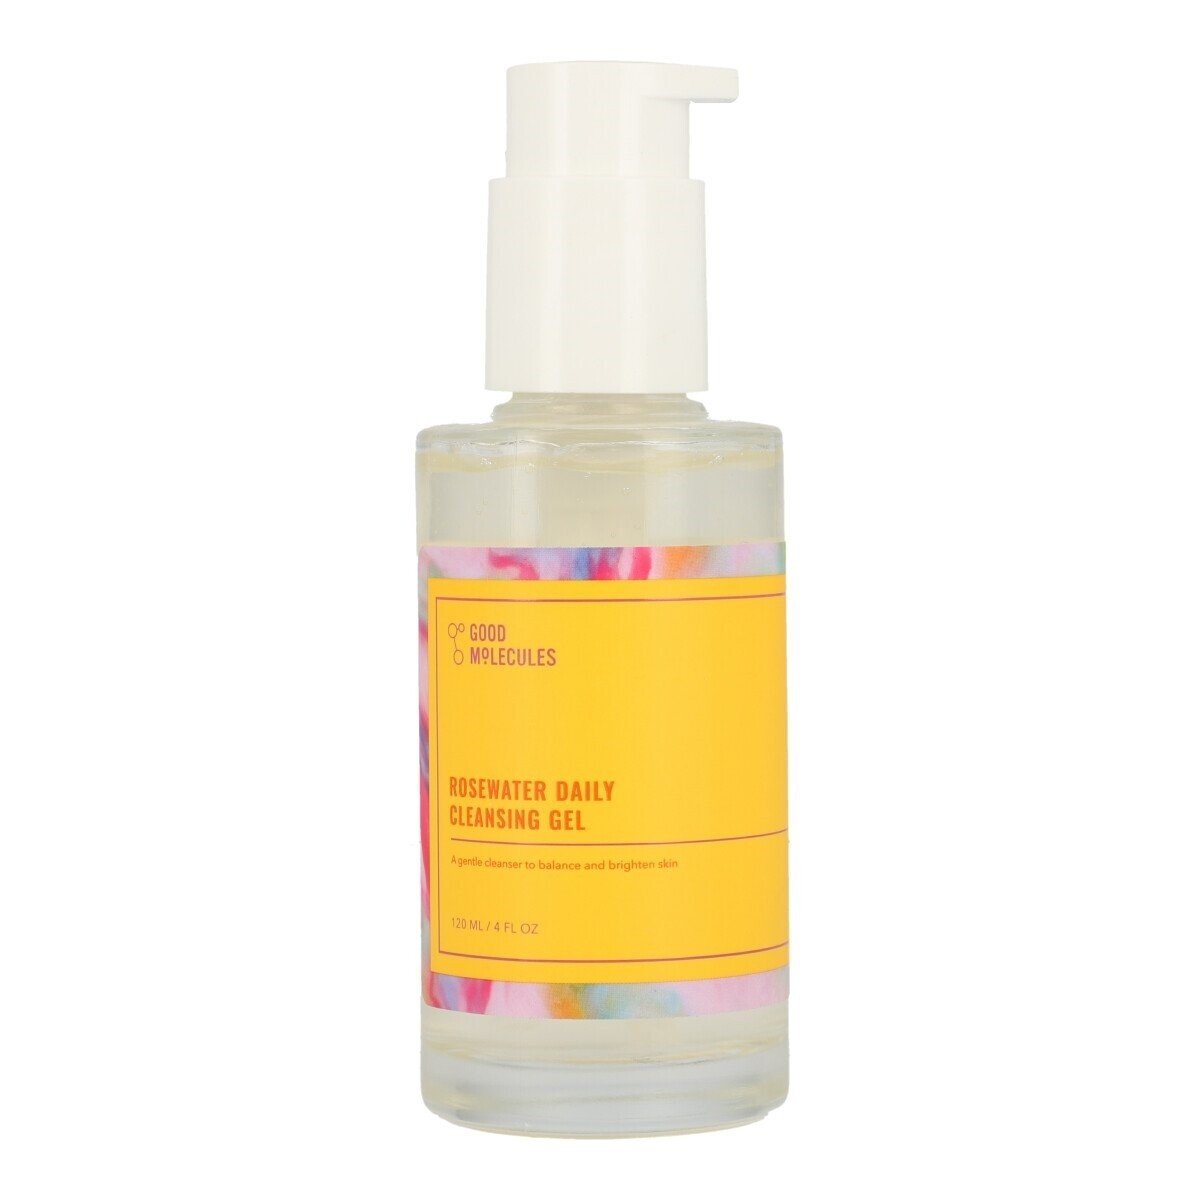 Rosewater Daily Cleansing Gel - GOOD MOLECULES